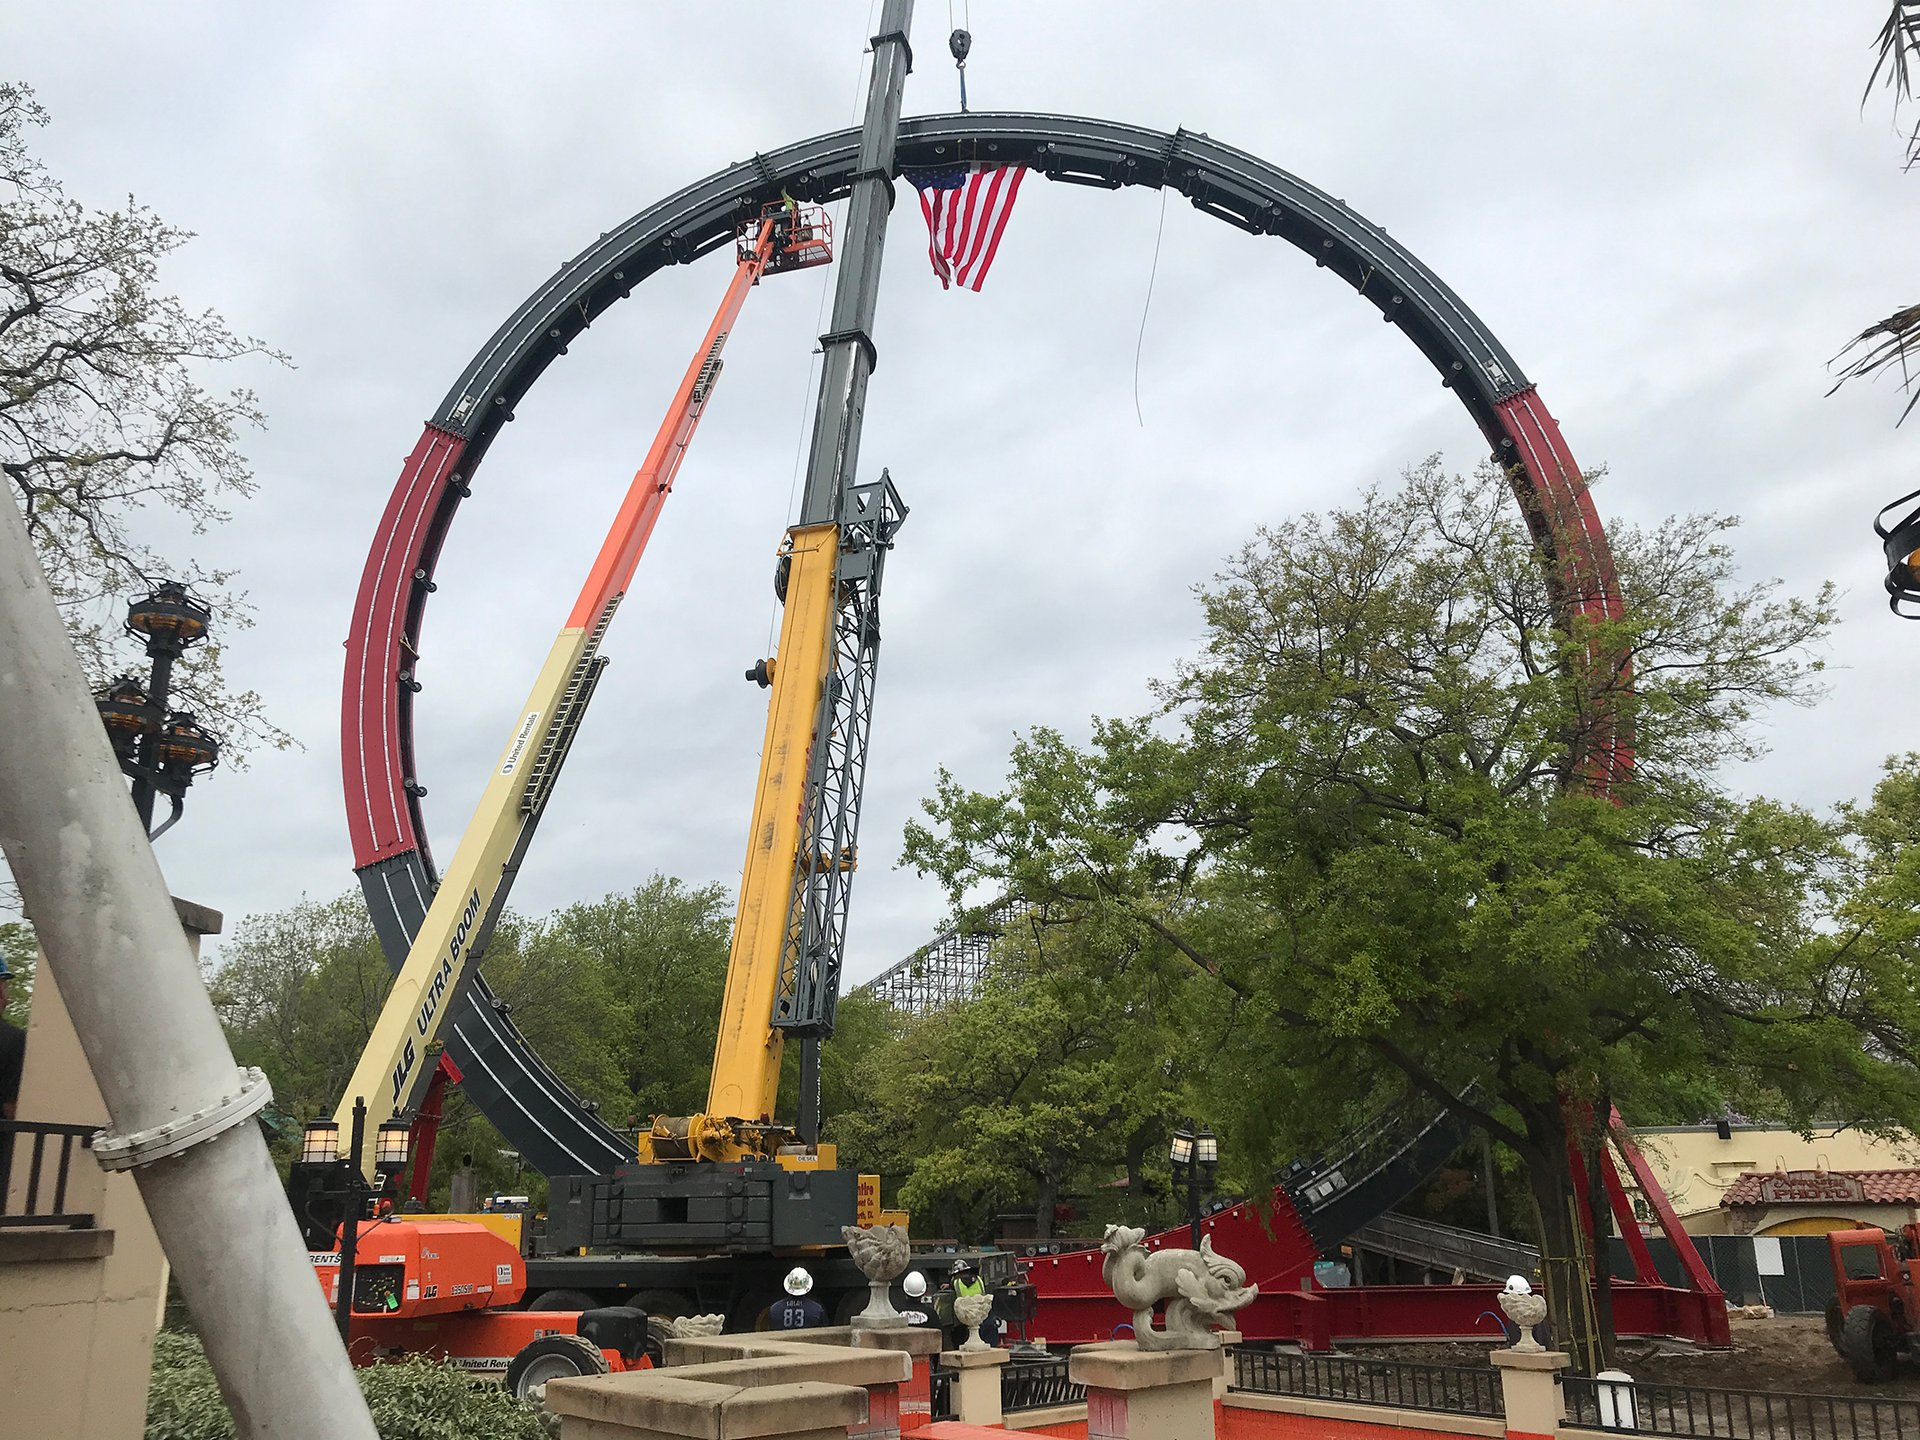 World's Largest Loop Coaster Coming to Six Flags Over Texas in 2019